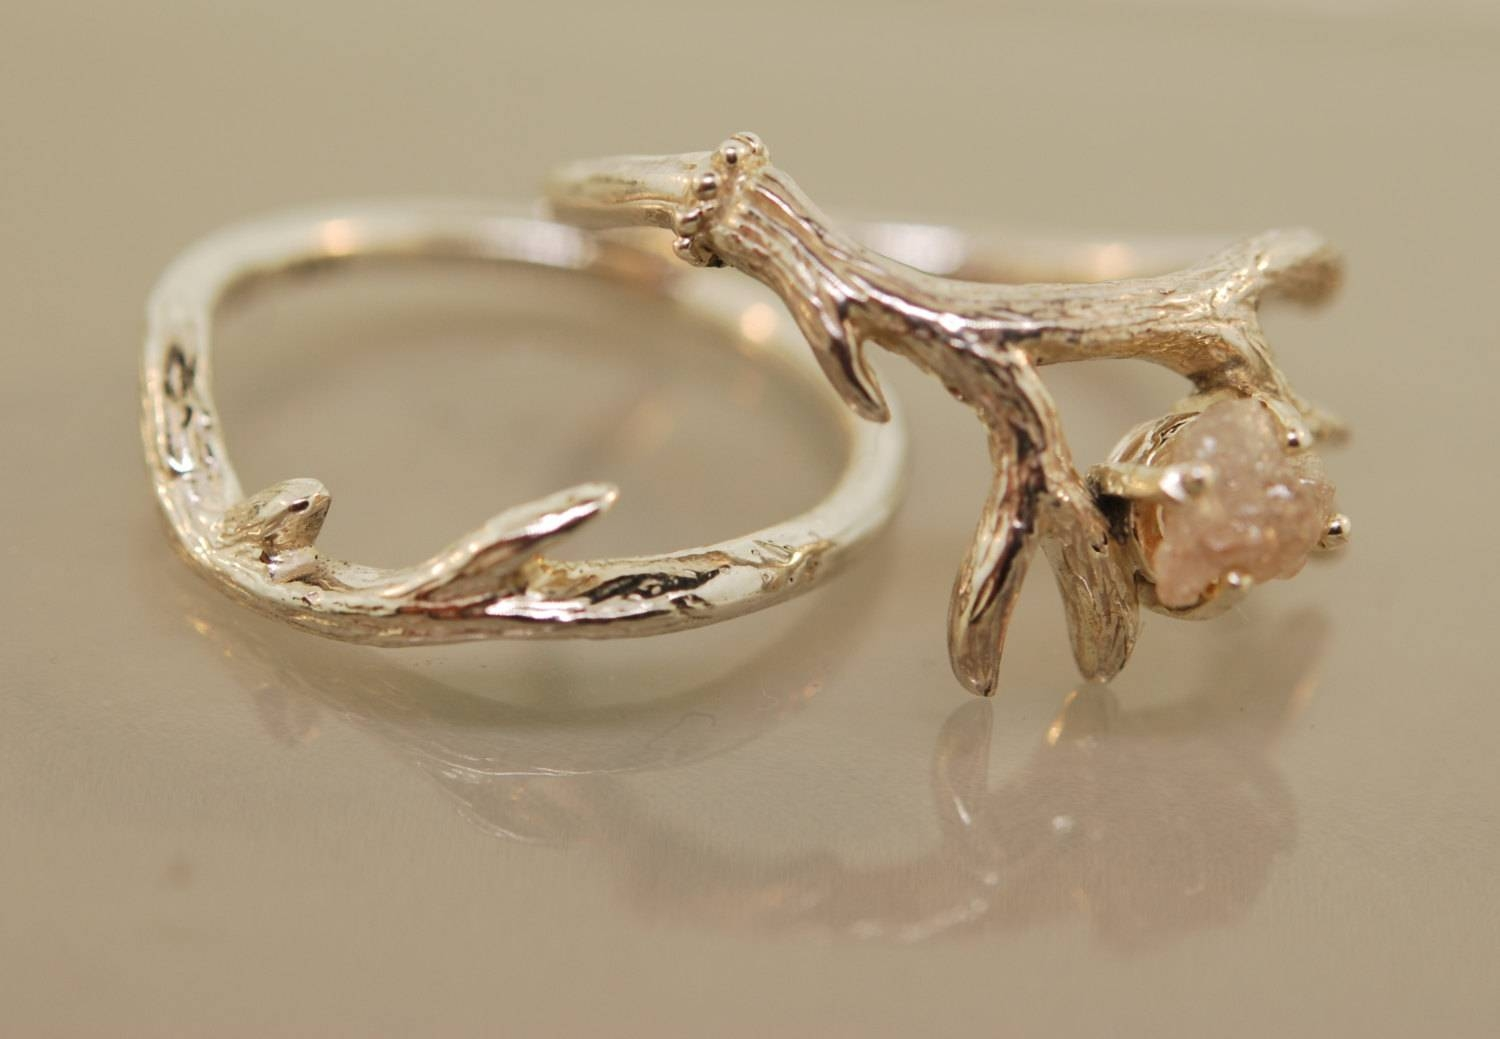 For Shenna Star Antler Ring 2 Set With Moss Aquamarine,alternative Pertaining To Antler Engagement Rings (View 8 of 15)